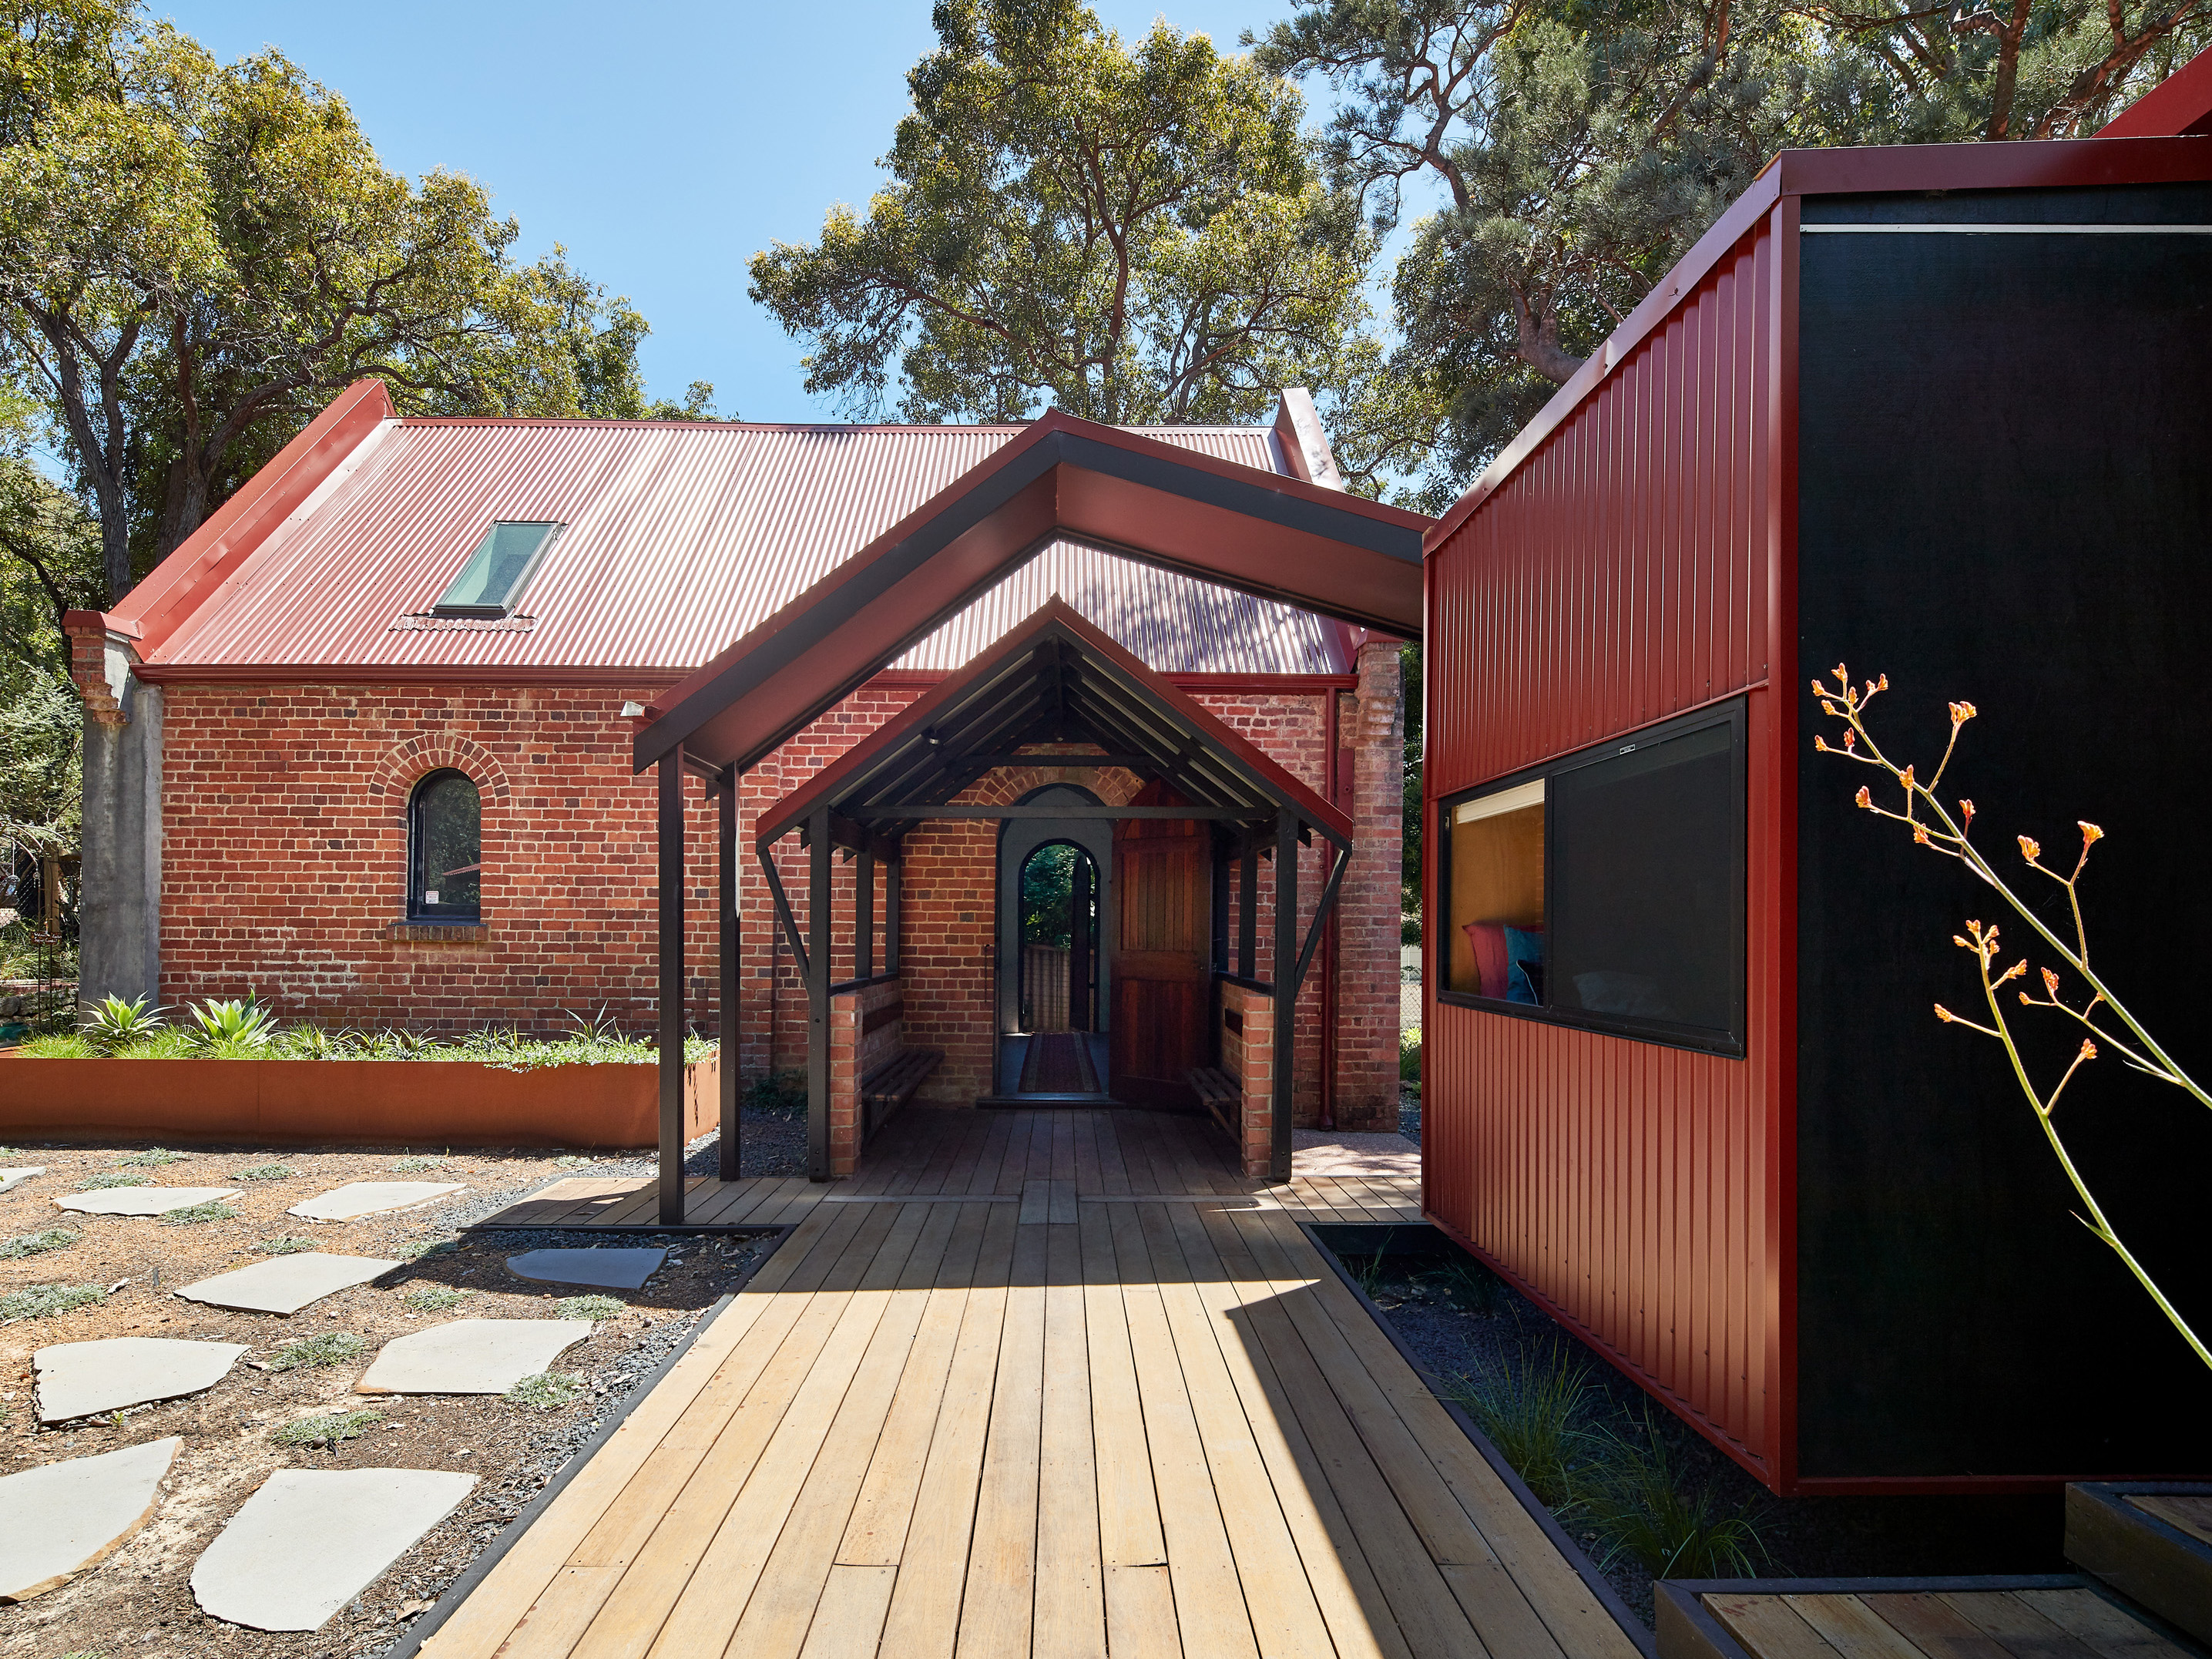 Perth house takes inspiration from century-old Anglican church